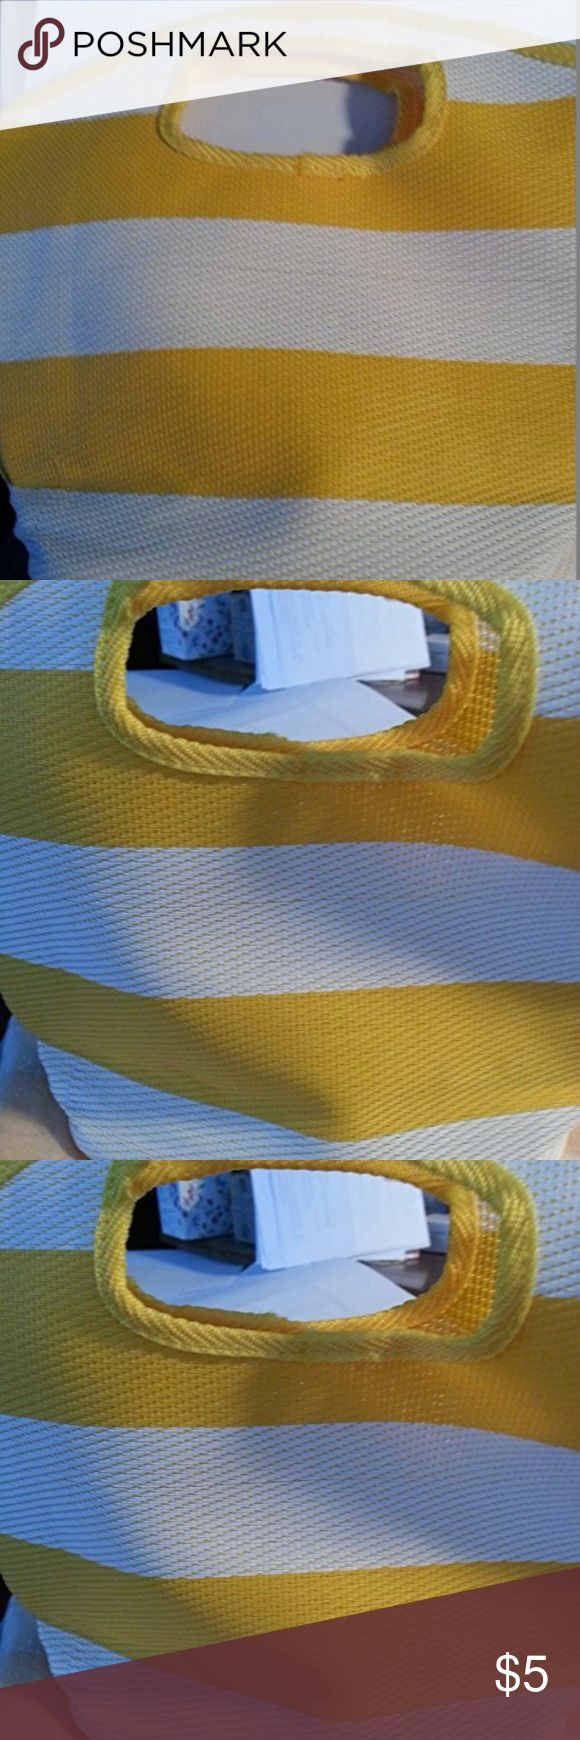 """AVON YELLOW & WHITE NYLON WOVEN NATURALS TOTE BAG New in  Sealed Package. Discontinued tote bag. Yellow & White Stripe Nylon Woven texture Tote Bag  Measures: 10"""" x 10"""" x 3"""" Avon Bags Totes"""